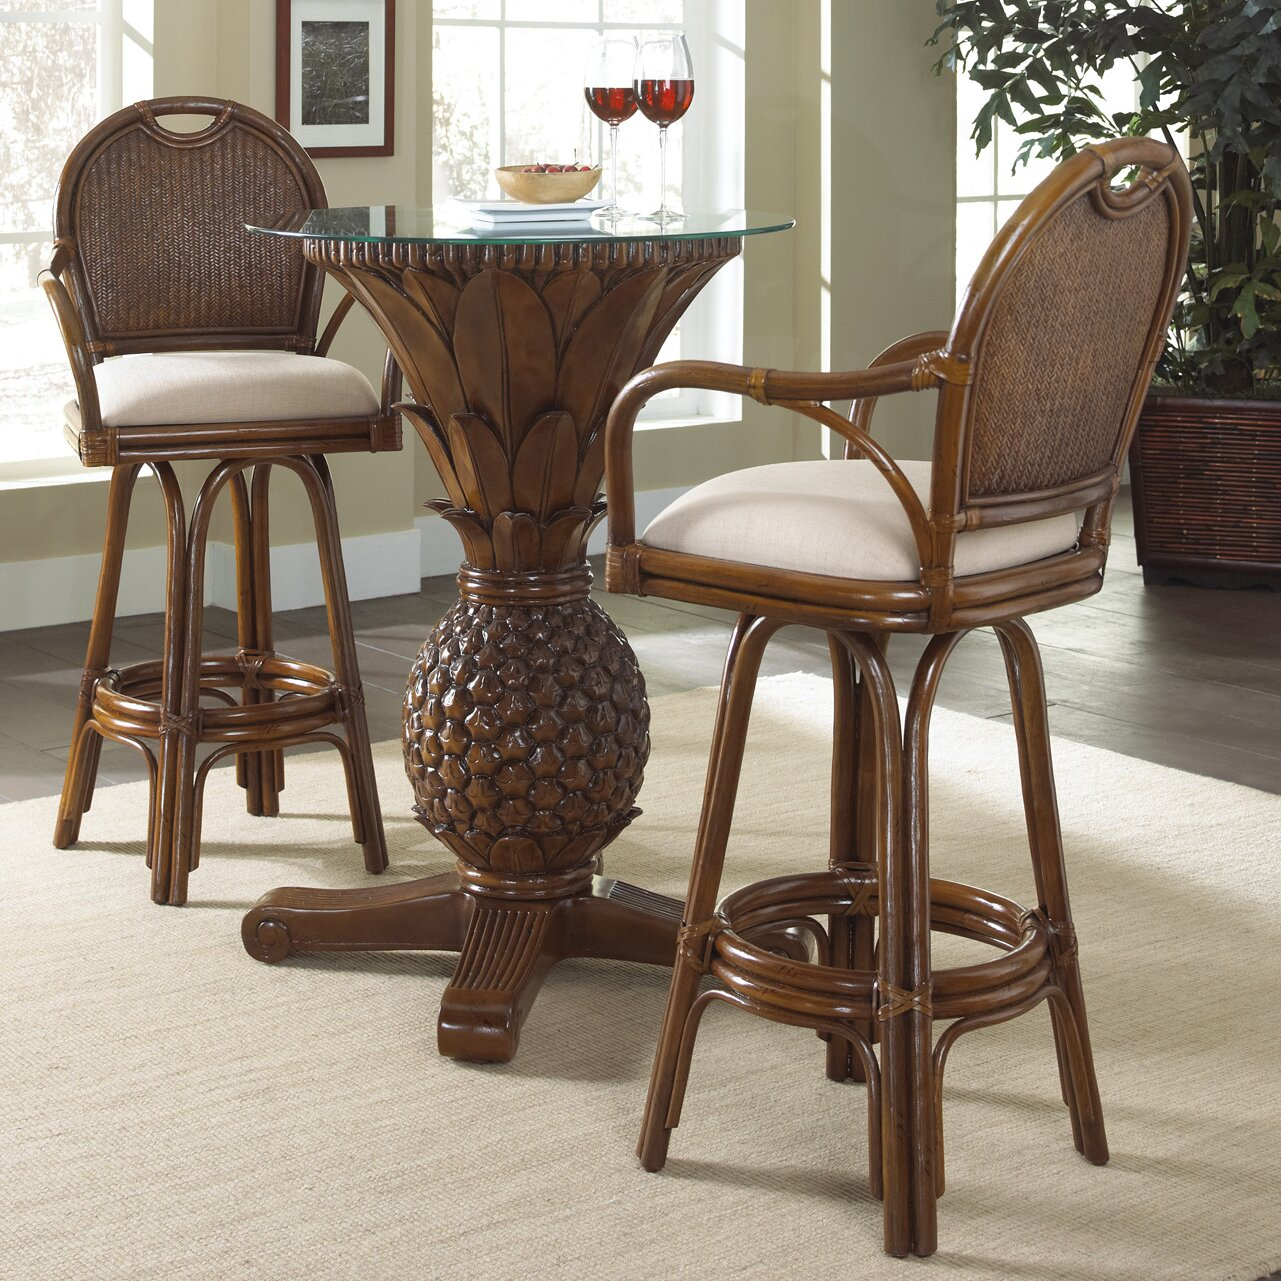 Kitchen pub table and chairs - Bay Point 3 Piece Pub Table Set